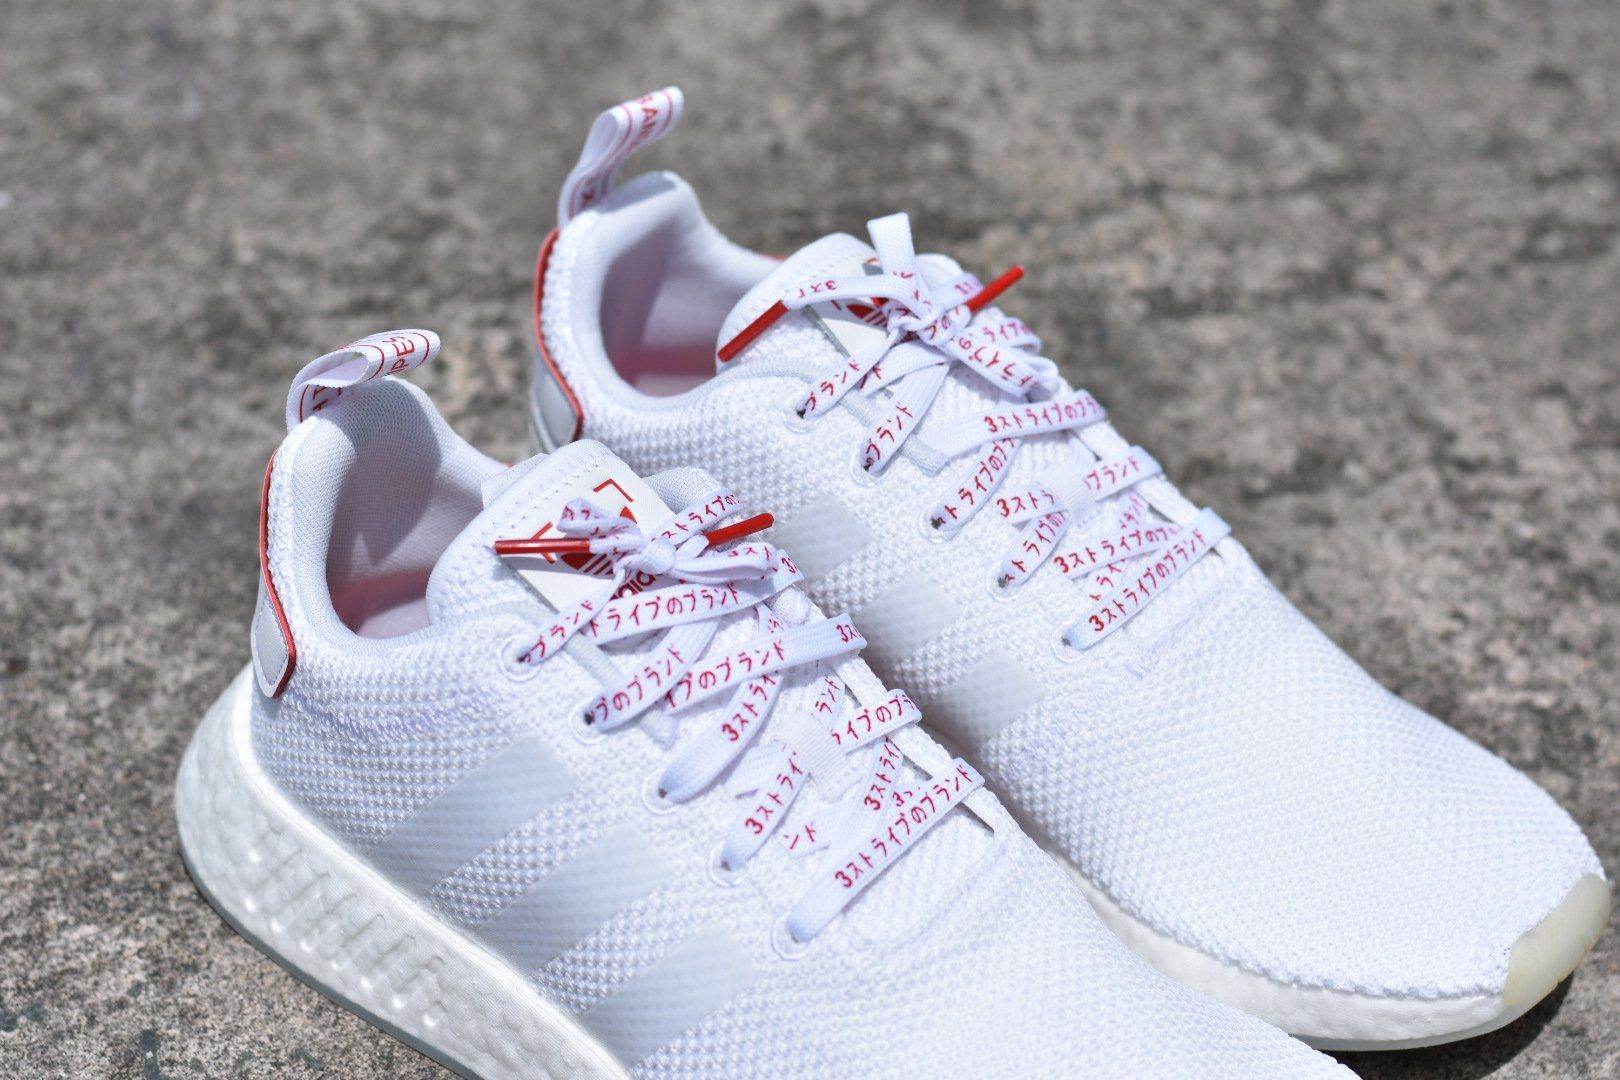 422fbd4d7 Flat Thin - NMD / Ultra Boost Japanese Katakana Flat Laces - White With Red  Font